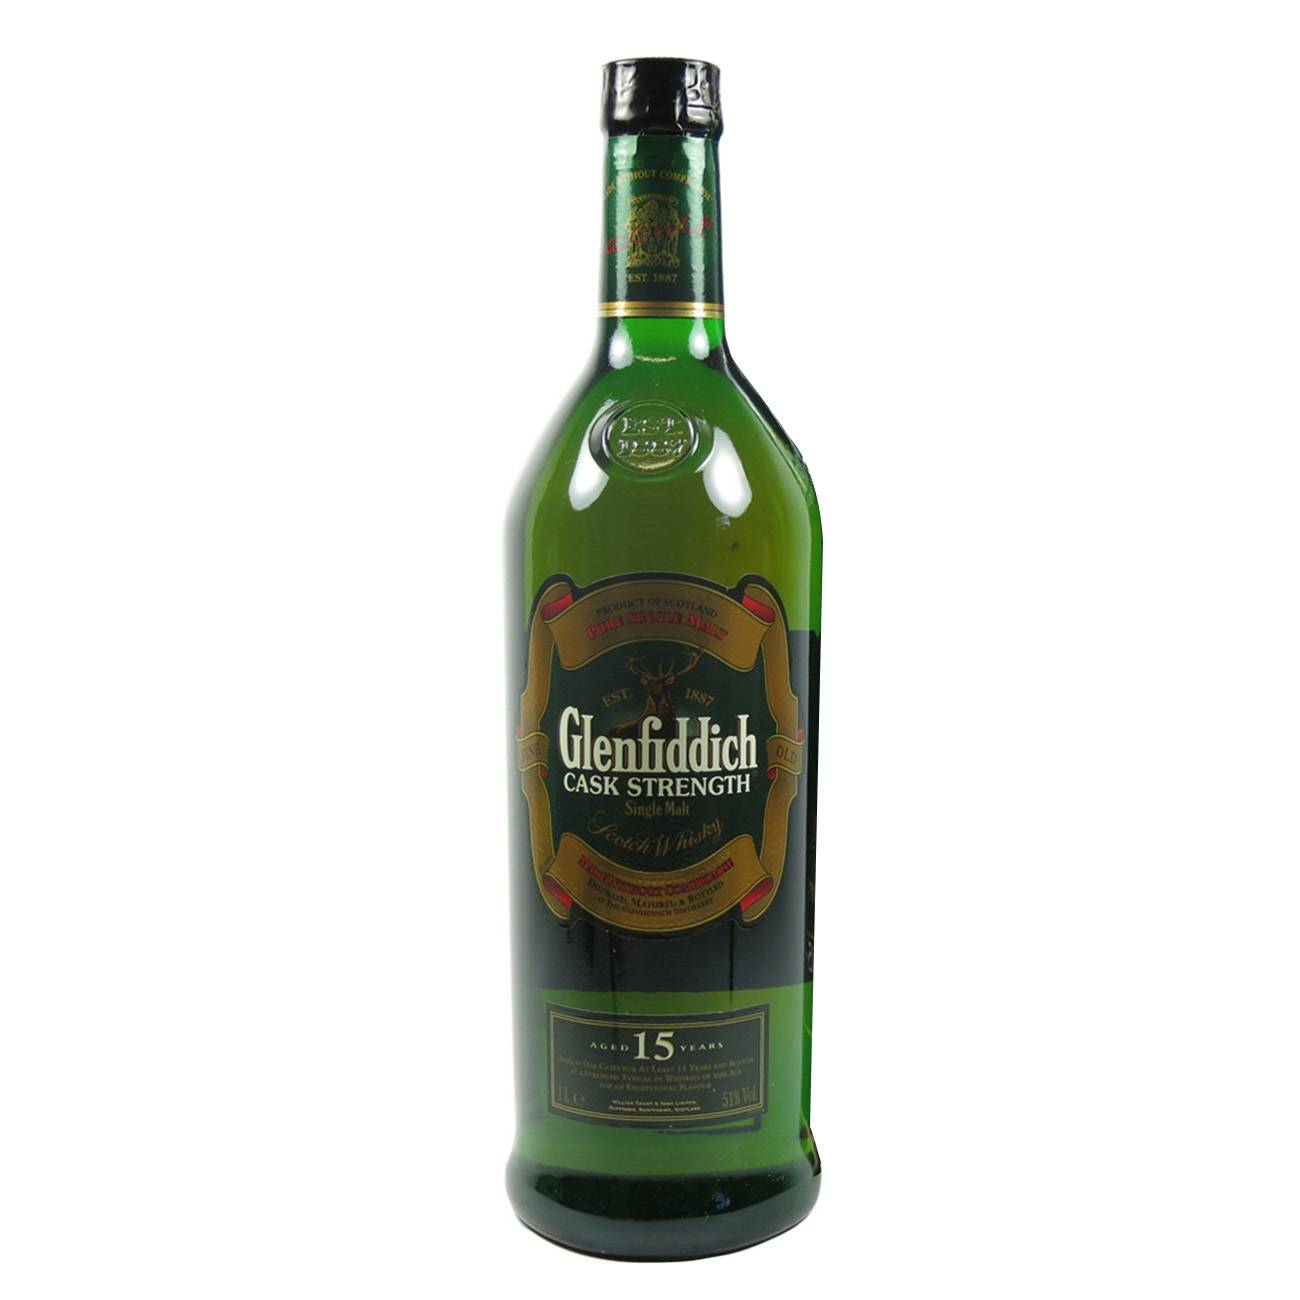 Whisky scotian, CASK STRENGTH 15 YEARS 1000ml, Glenfiddich